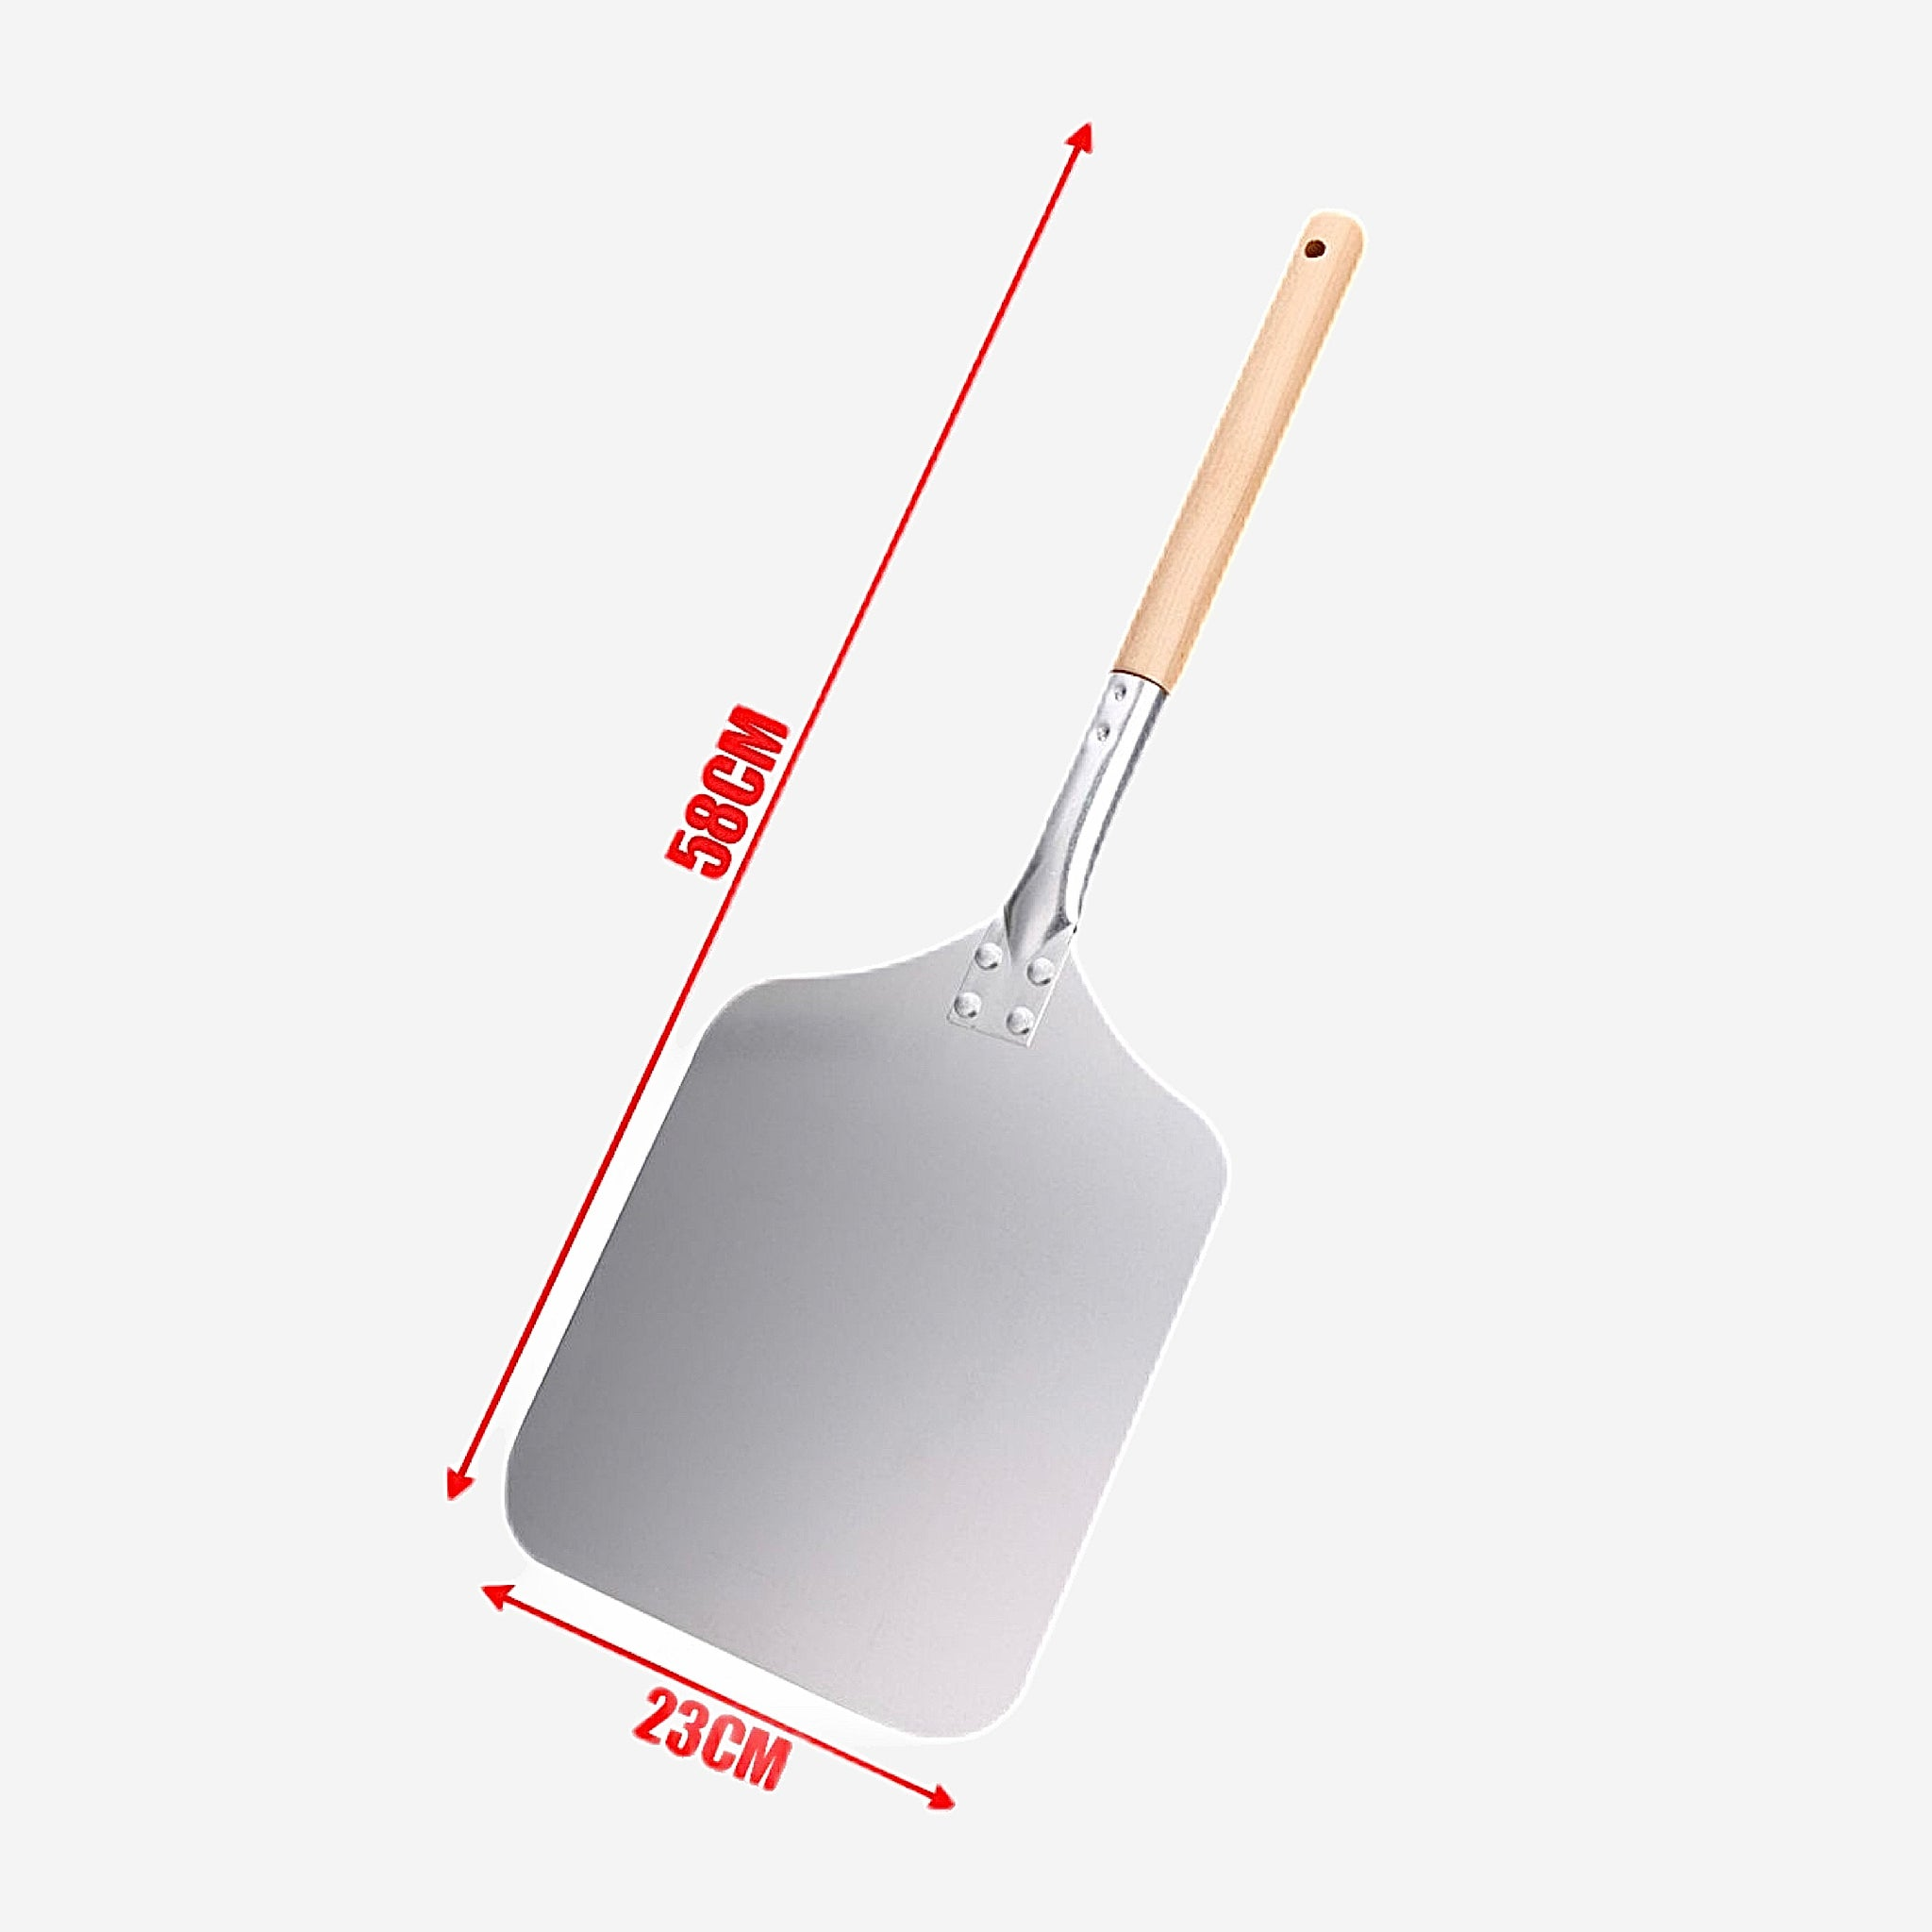 58cm Aluminum Pizza Peel Shovel